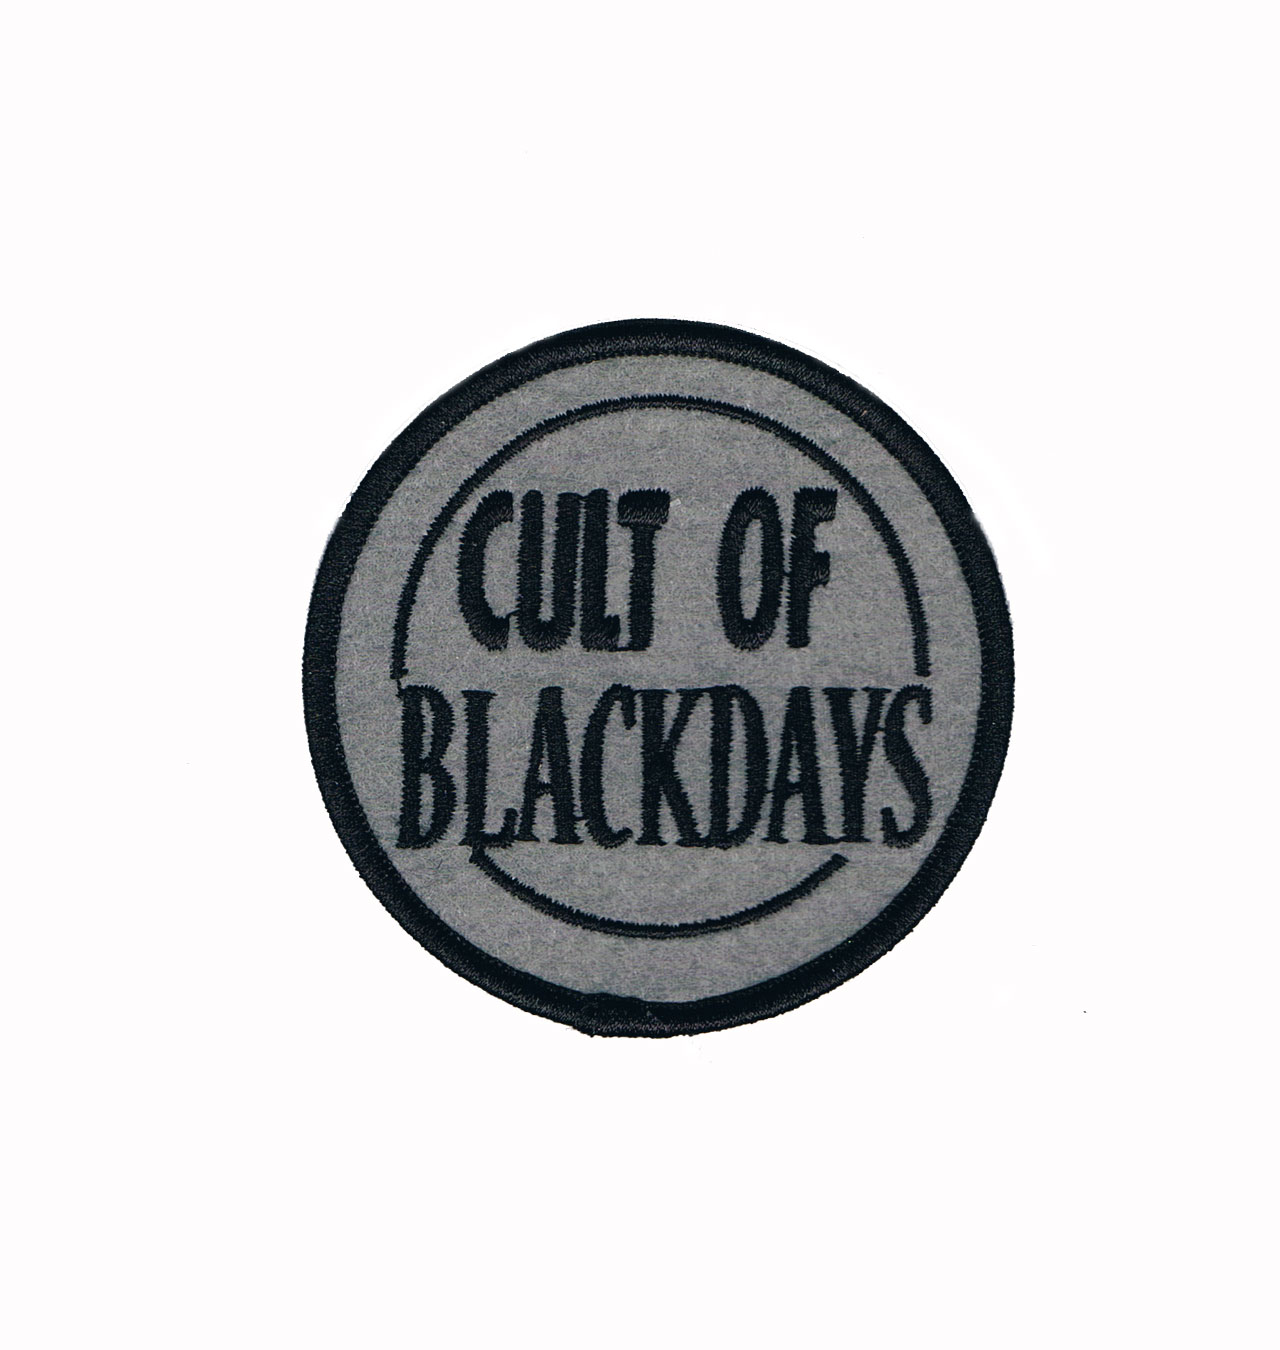 blackdays-cult-of-blackness-patch-01